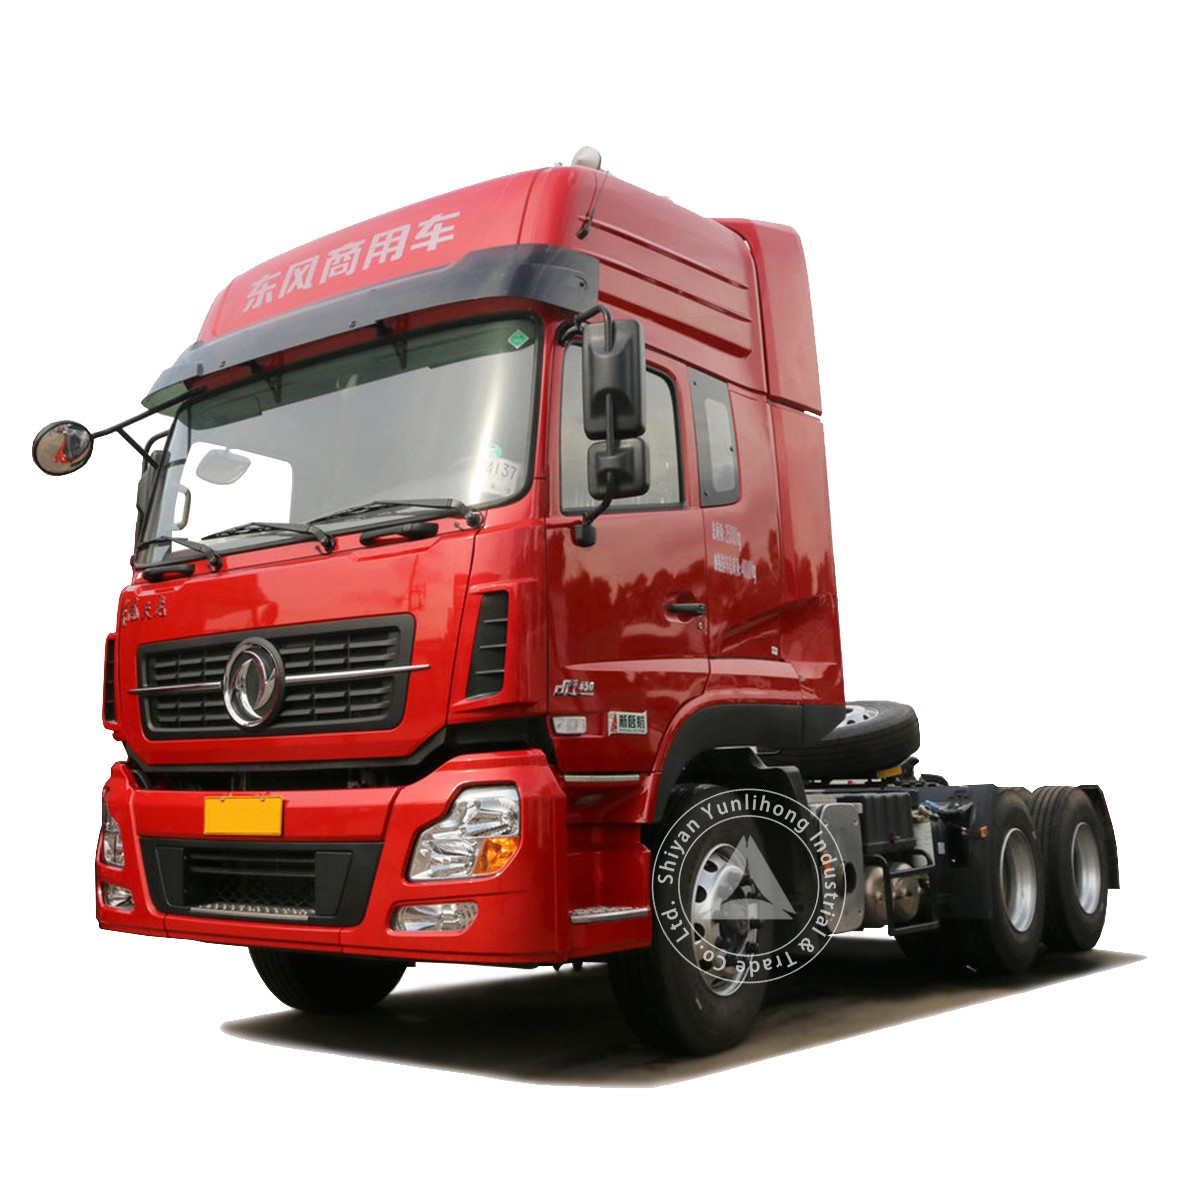 Dongfeng KL 450hp 6x4 Tractor Truck Manufacturers, Dongfeng KL 450hp 6x4 Tractor Truck Factory, Supply Dongfeng KL 450hp 6x4 Tractor Truck